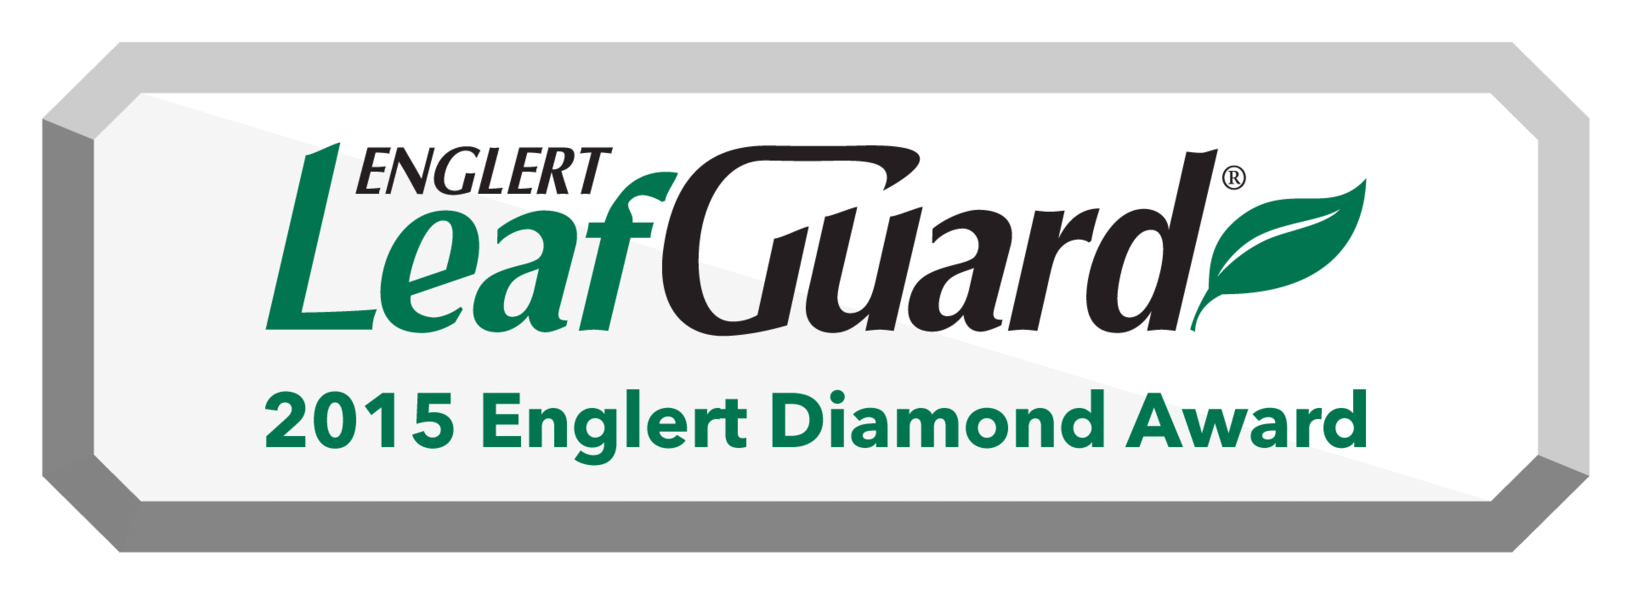 Englert Diamond Award 2015